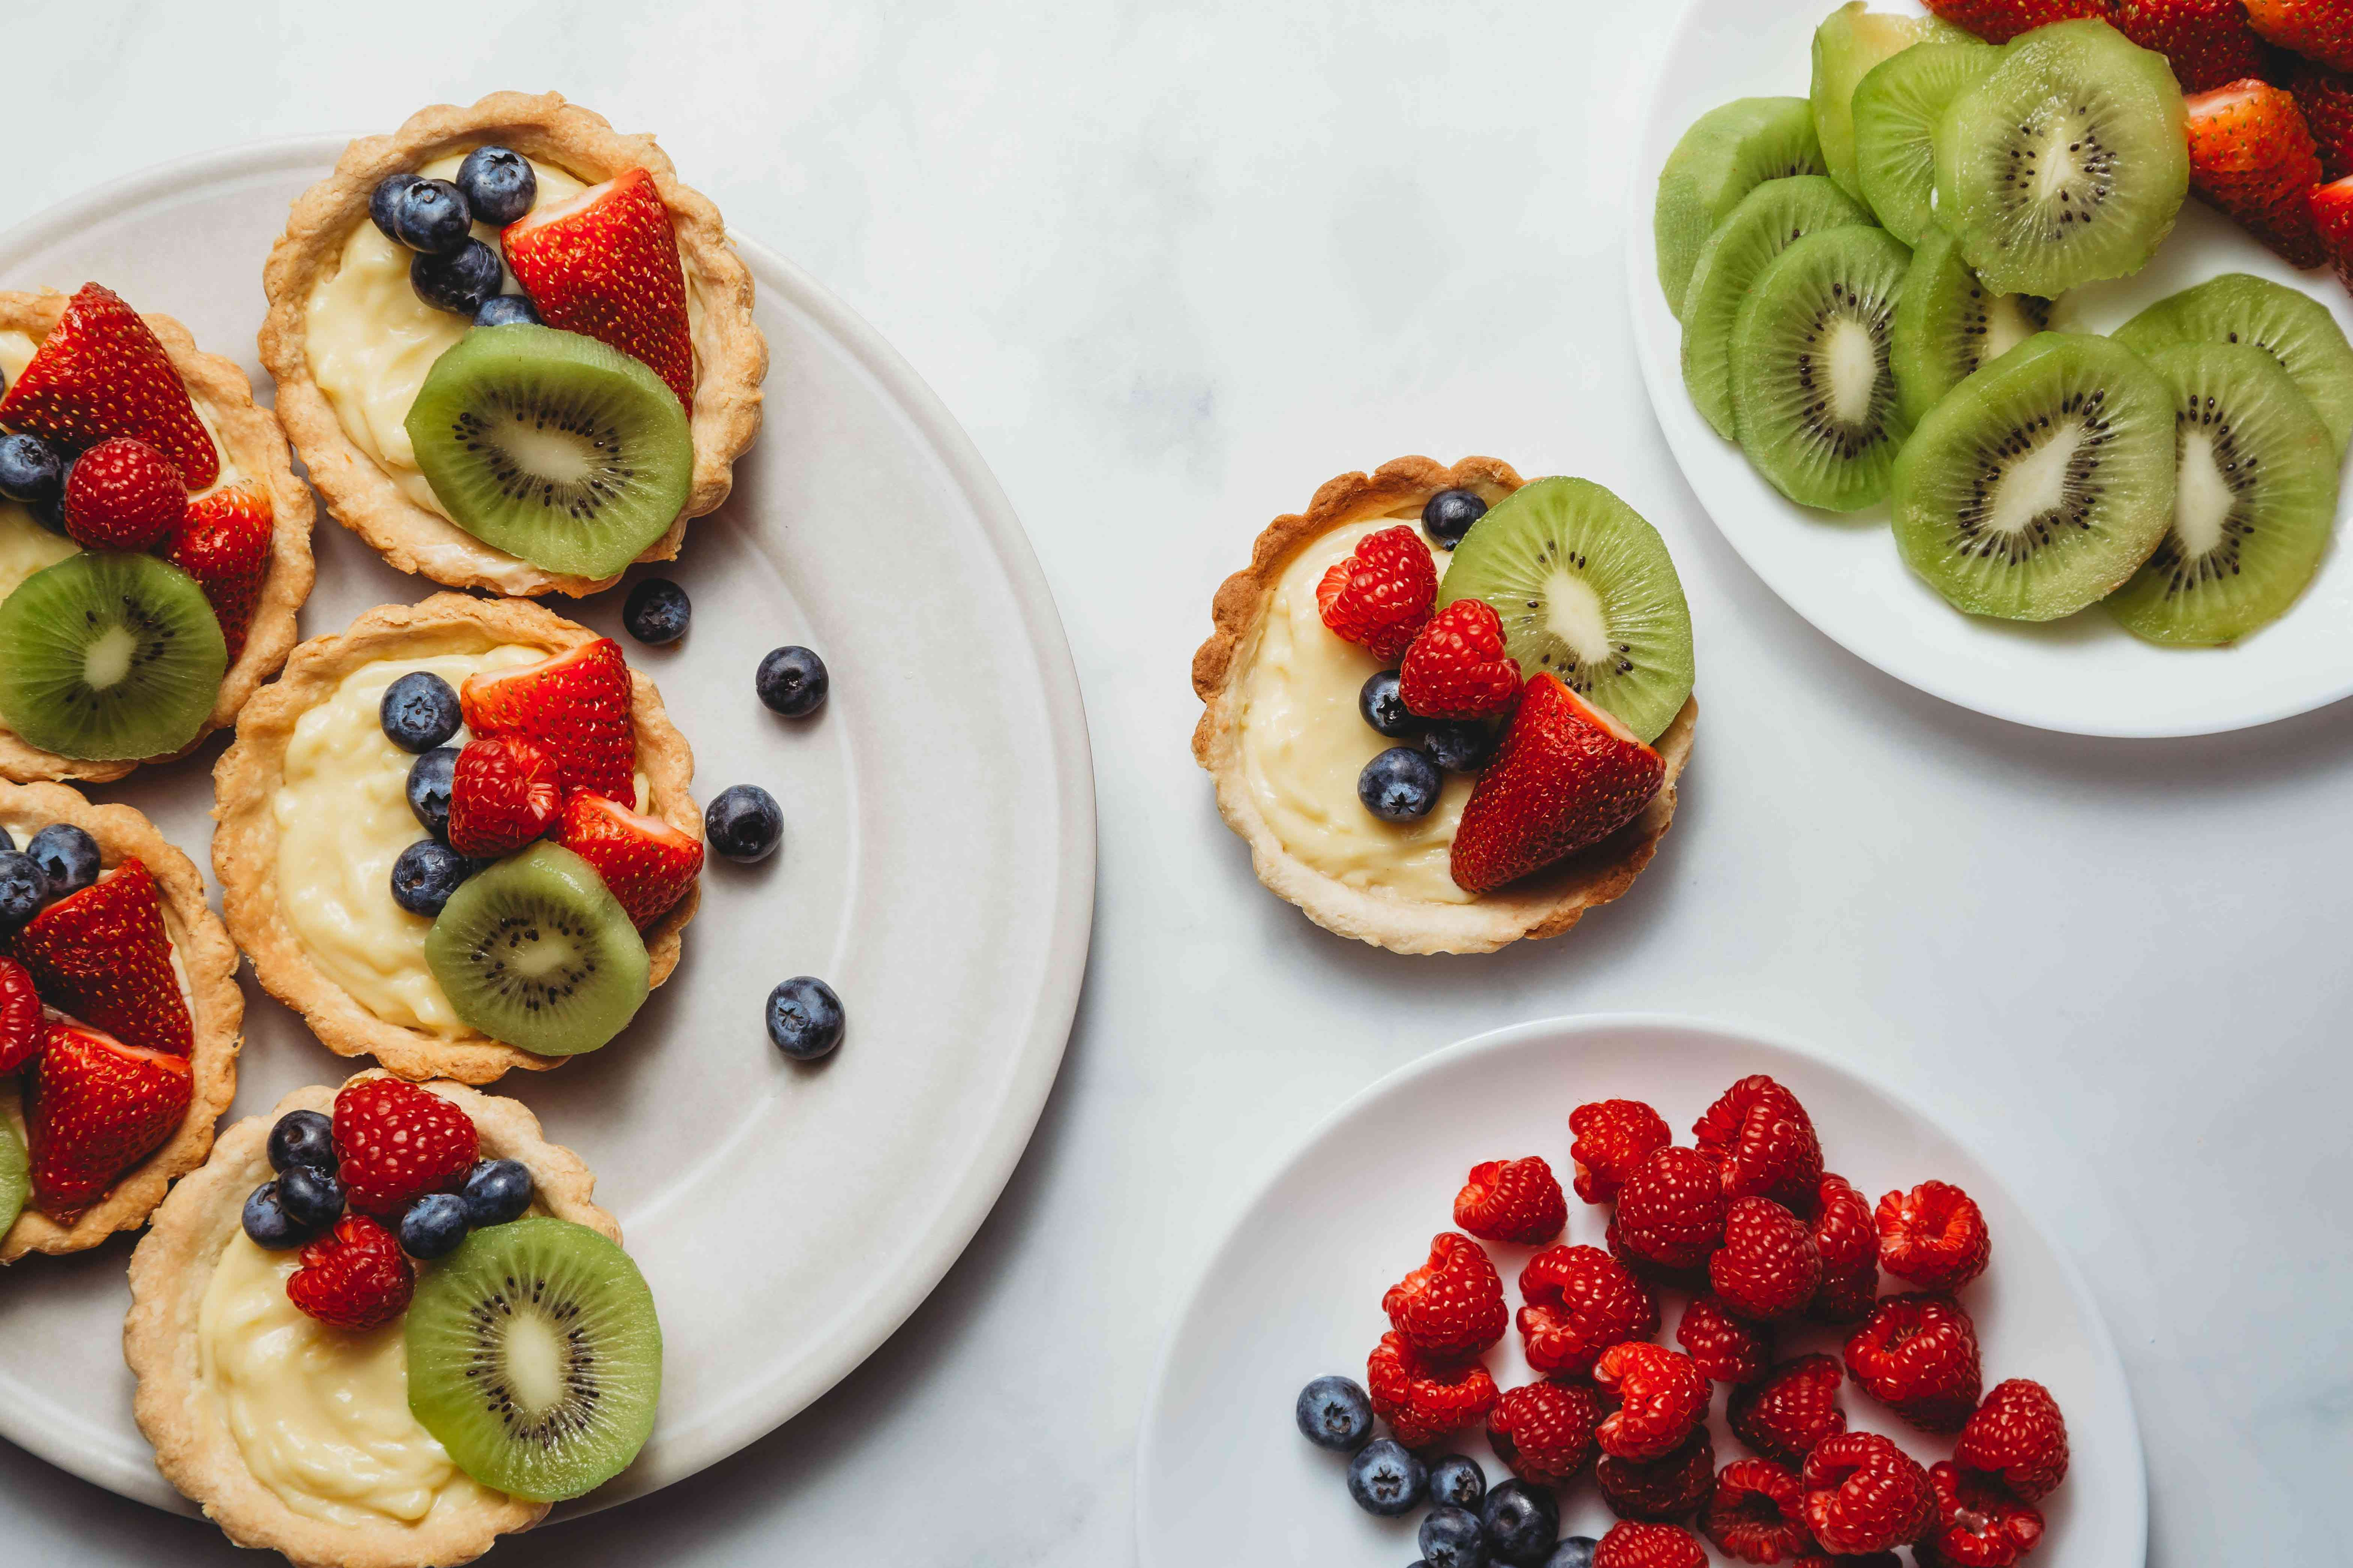 arrange your fruit on top of the pastry cream